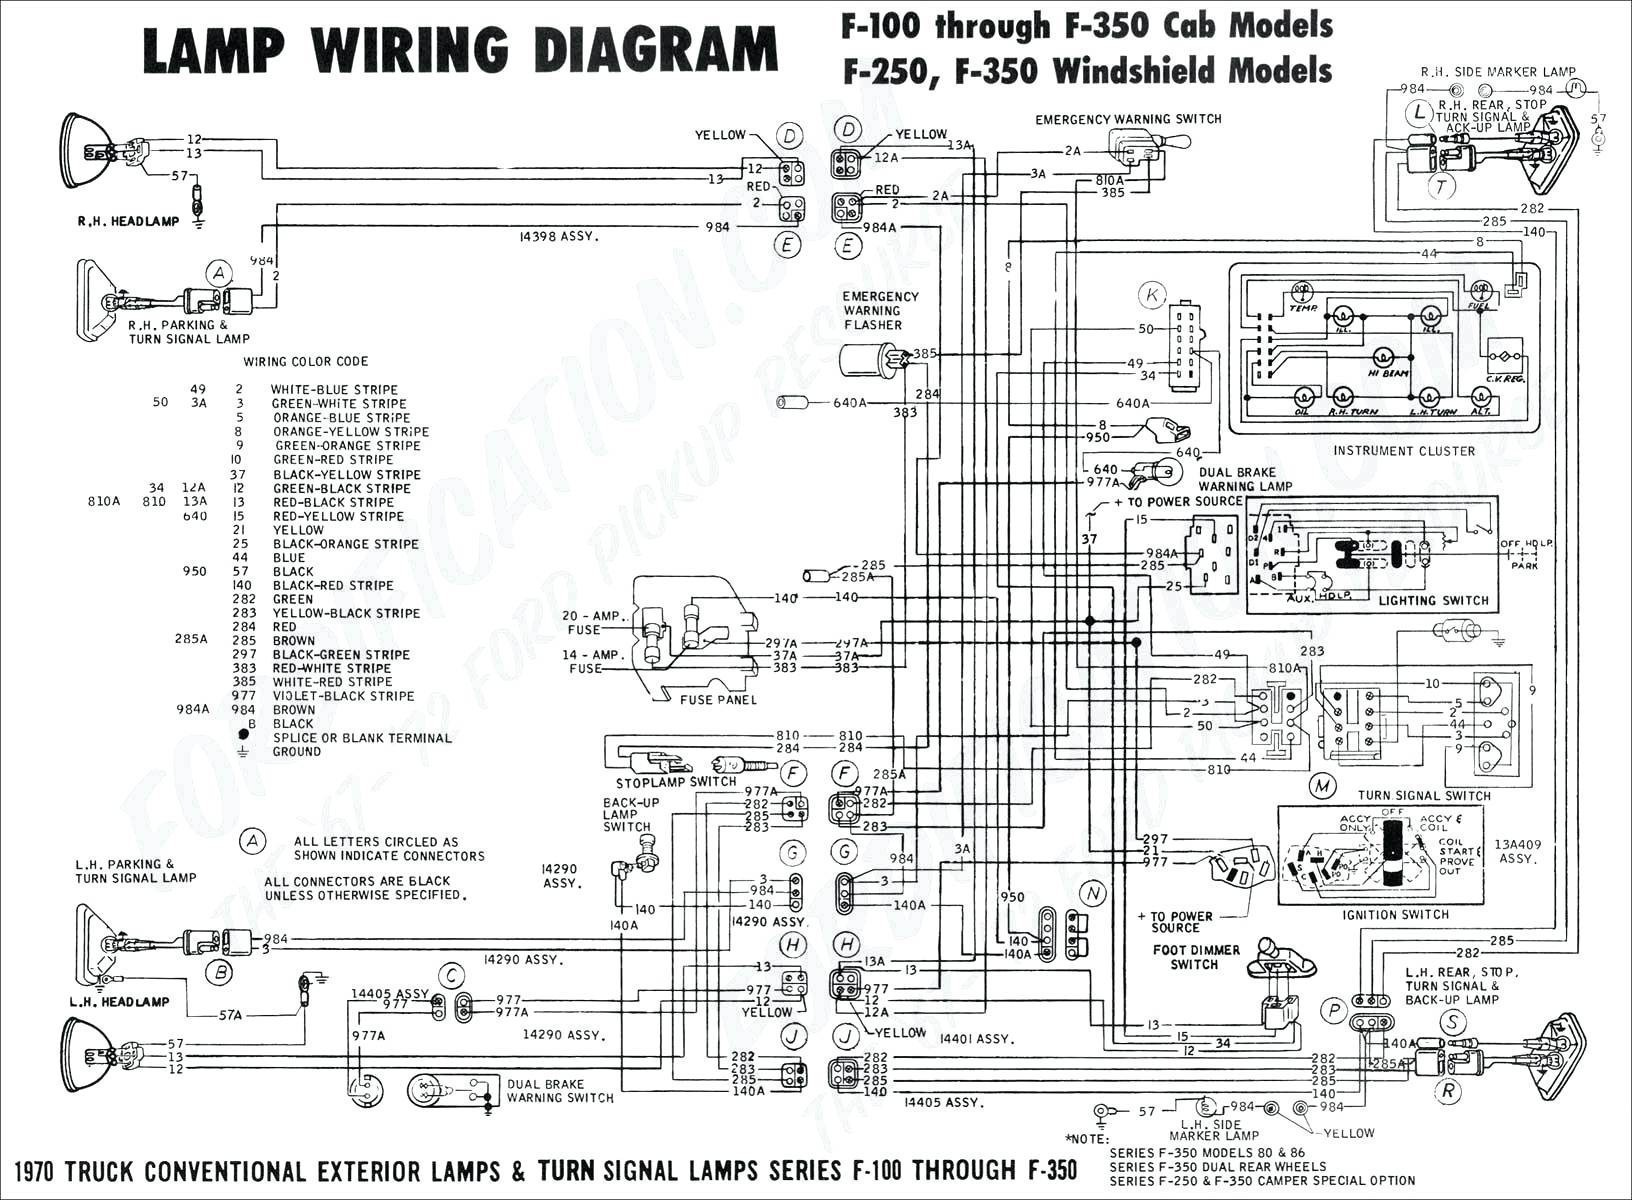 Mitsubishi Mini Truck Wiring Diagram Experts Of Wiring Diagram \u2022 Heavy  Truck Wiring Diagram Mini Truck Wiring Diagram